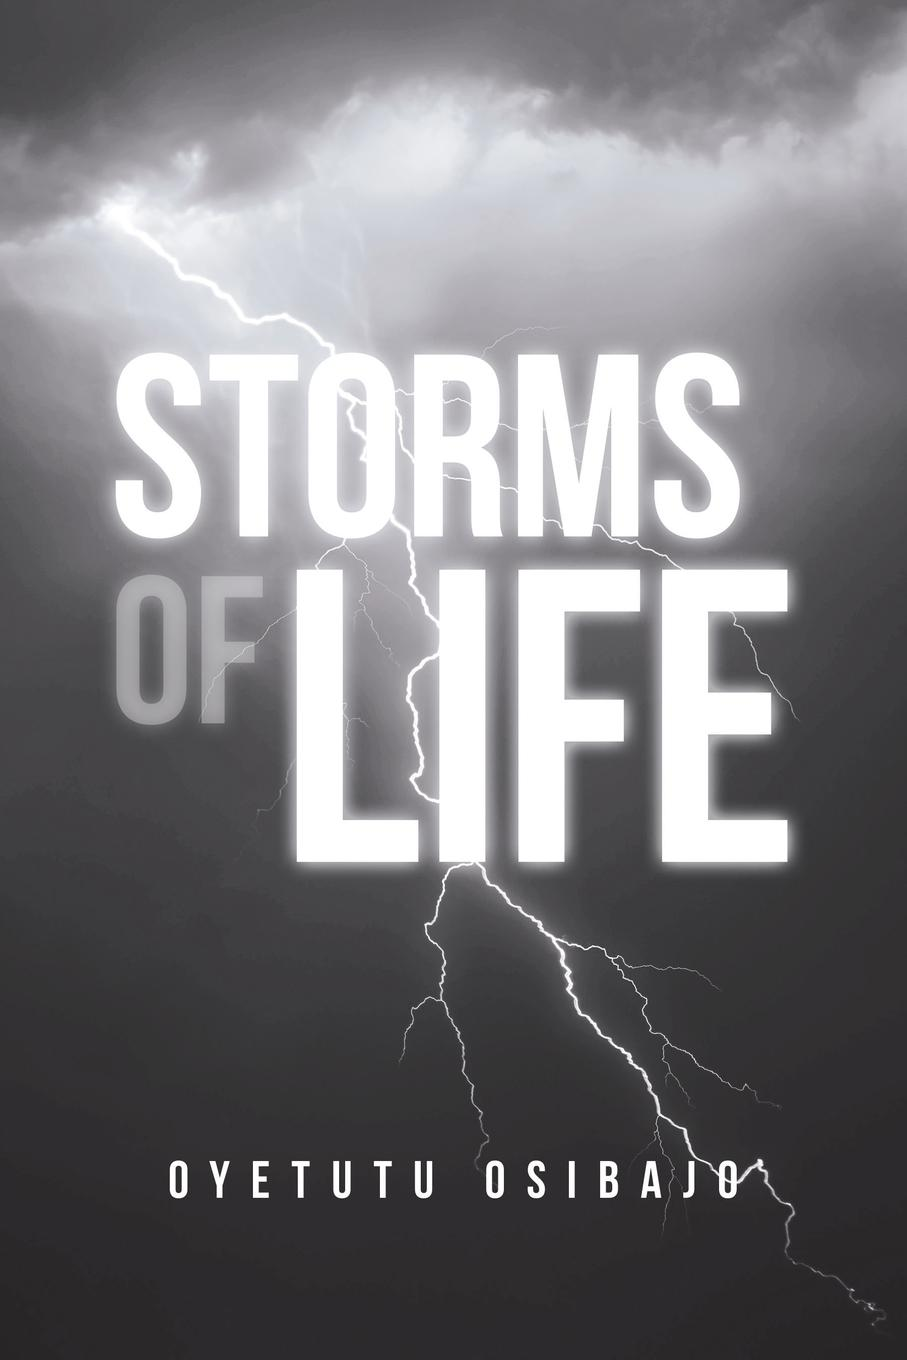 Oyetutu Osibajo Storms of Life rara masterson the storm is over